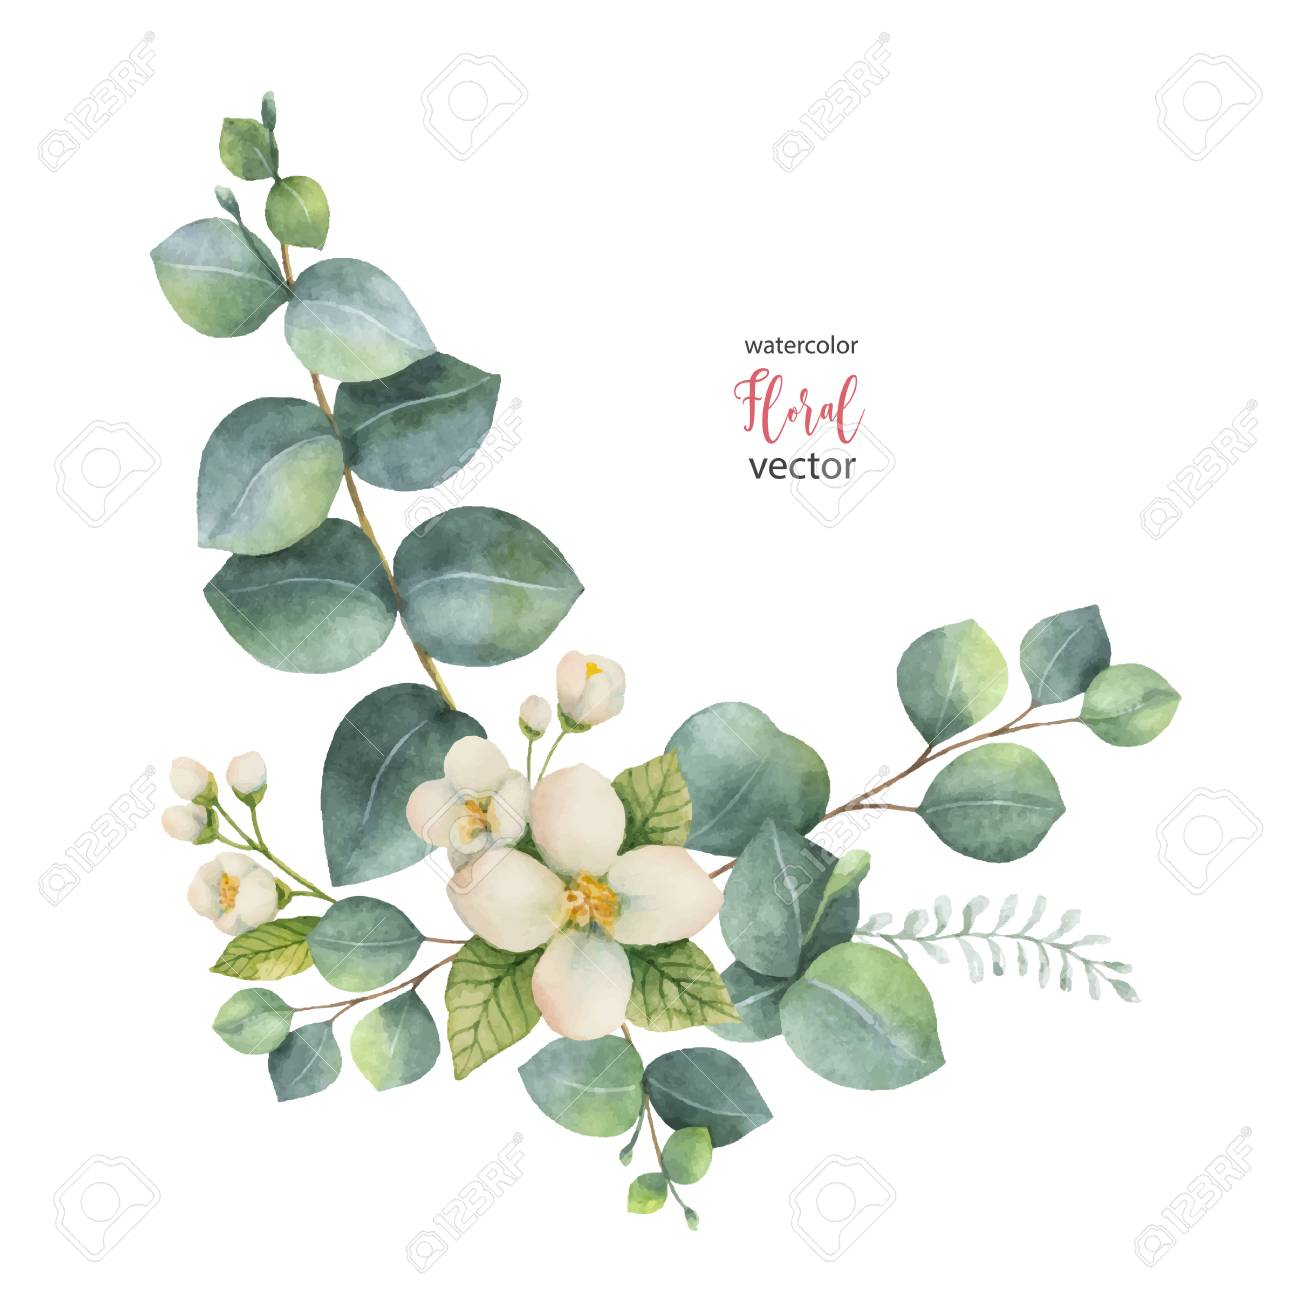 Watercolor vector wreath with green eucalyptus leaves and Jasmine. - 91104005